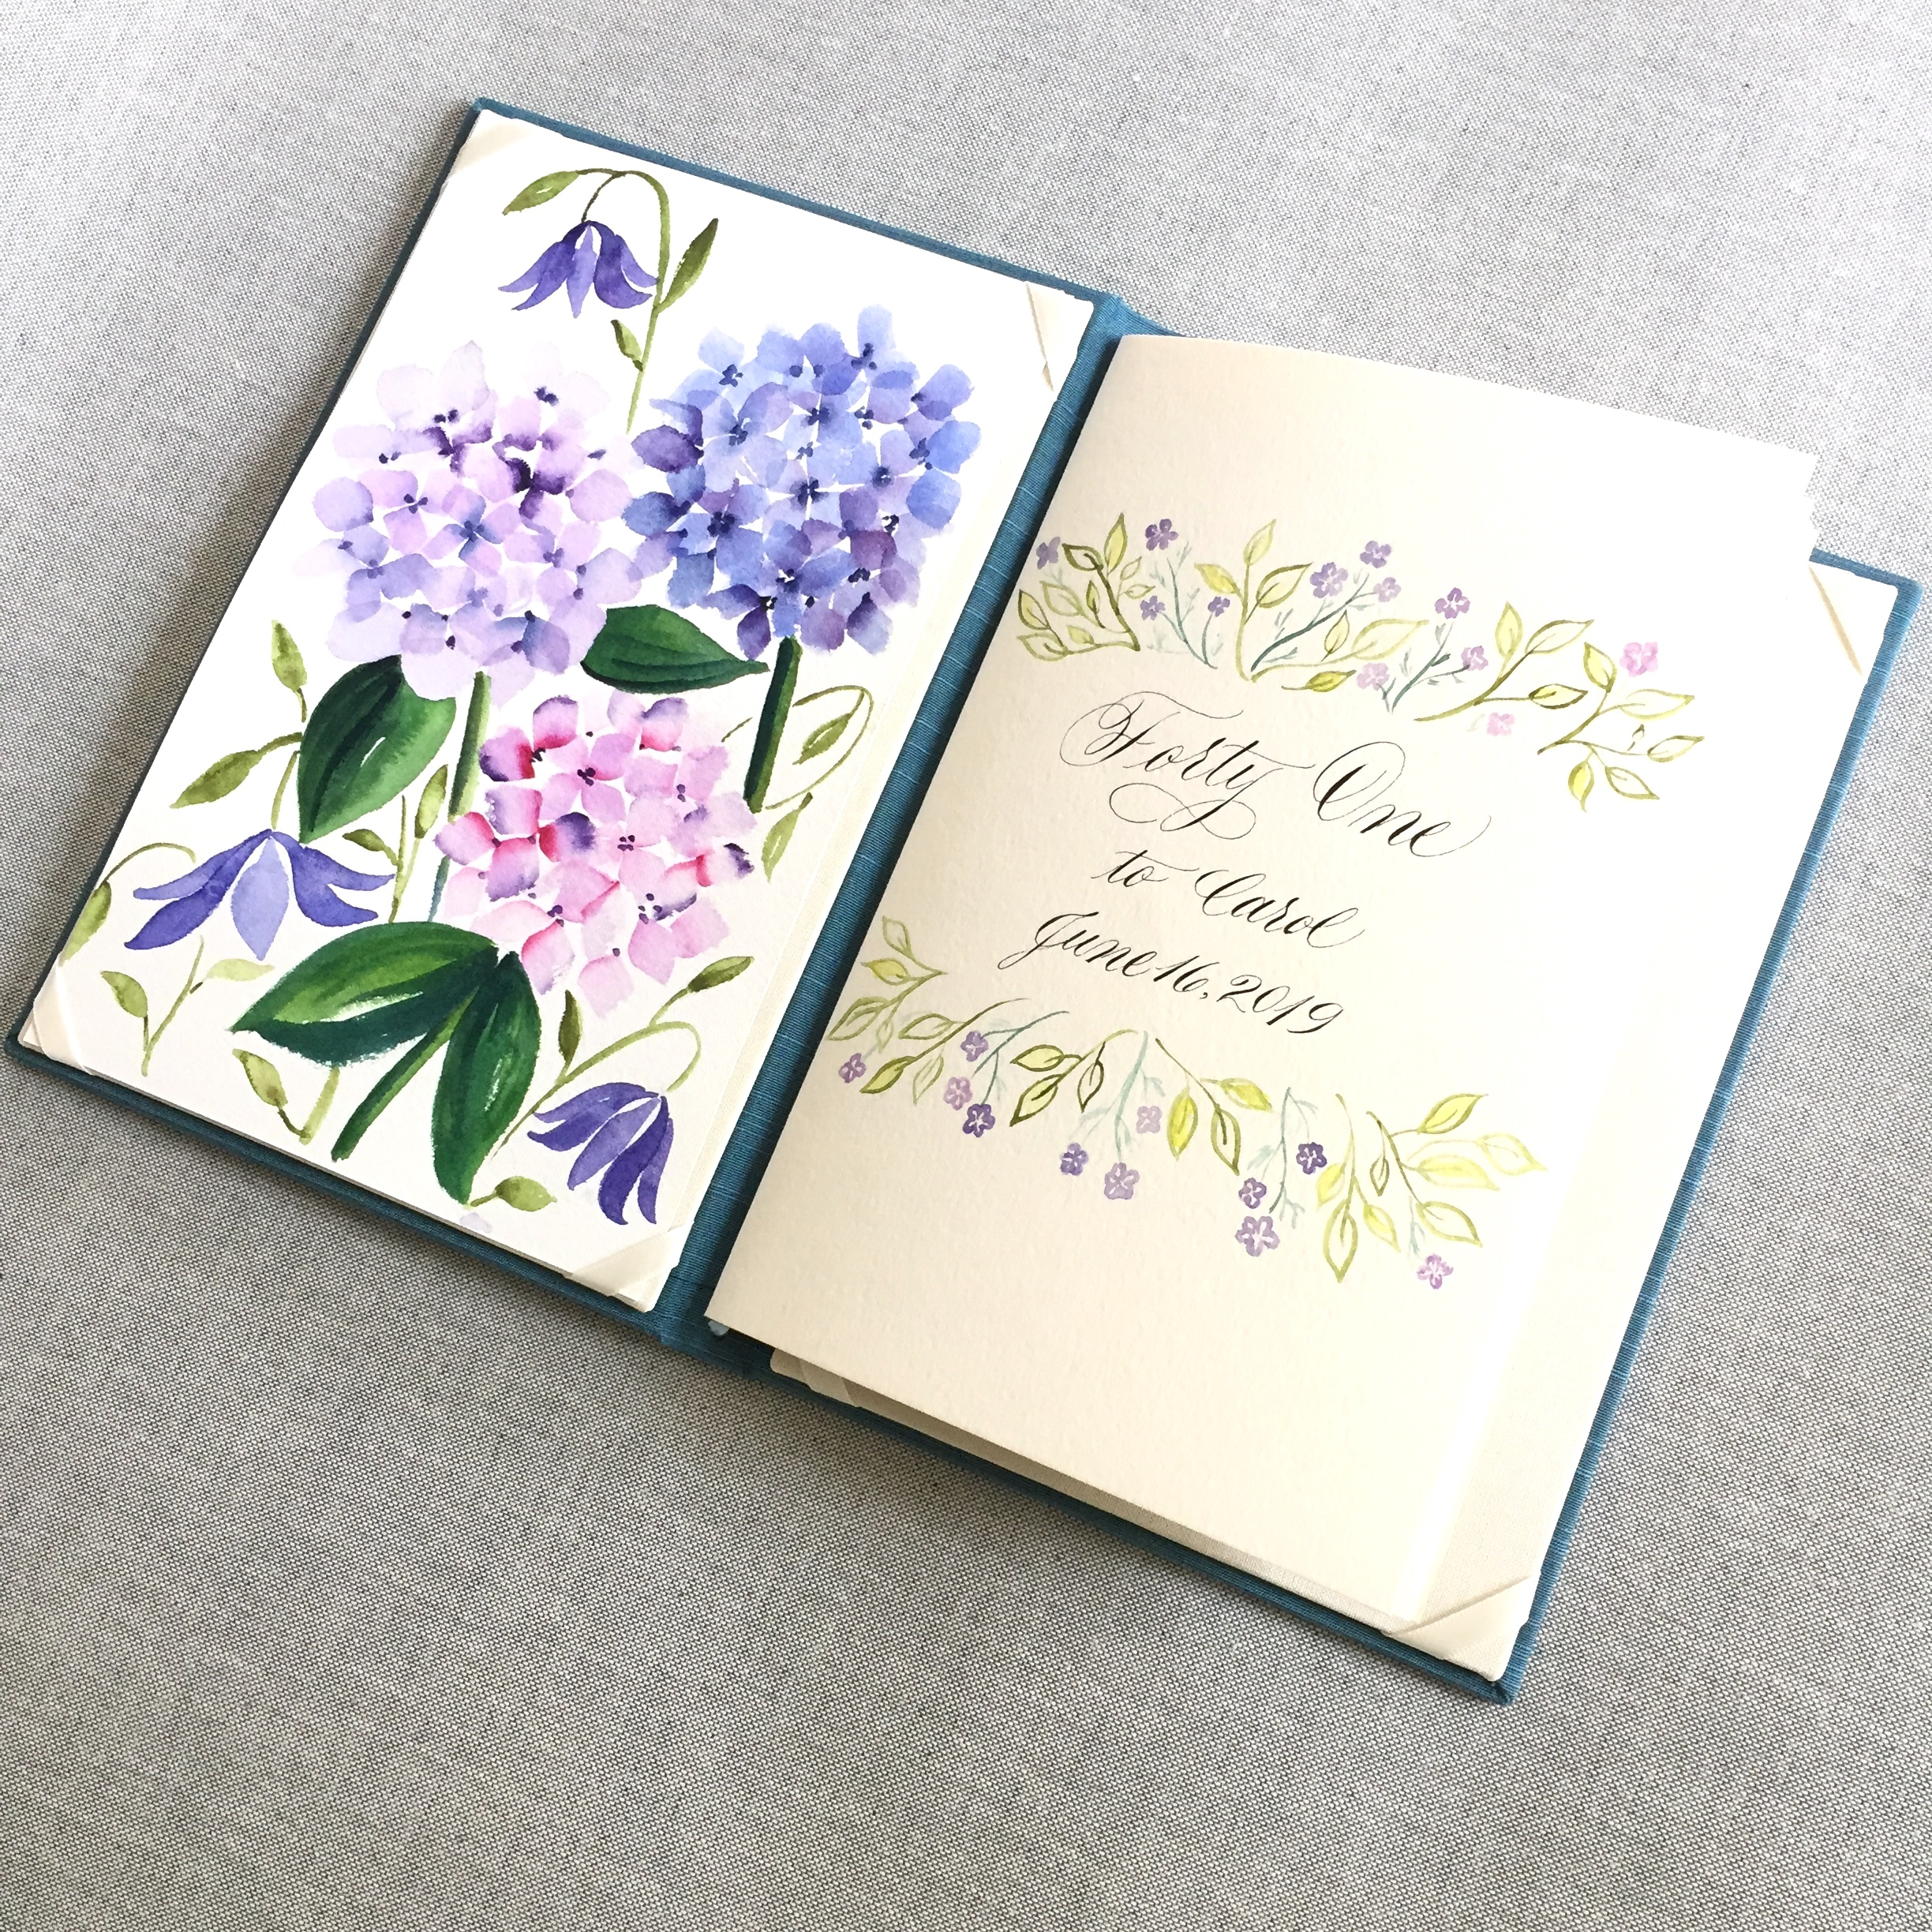 Book with hand-painted florals and calligraphy